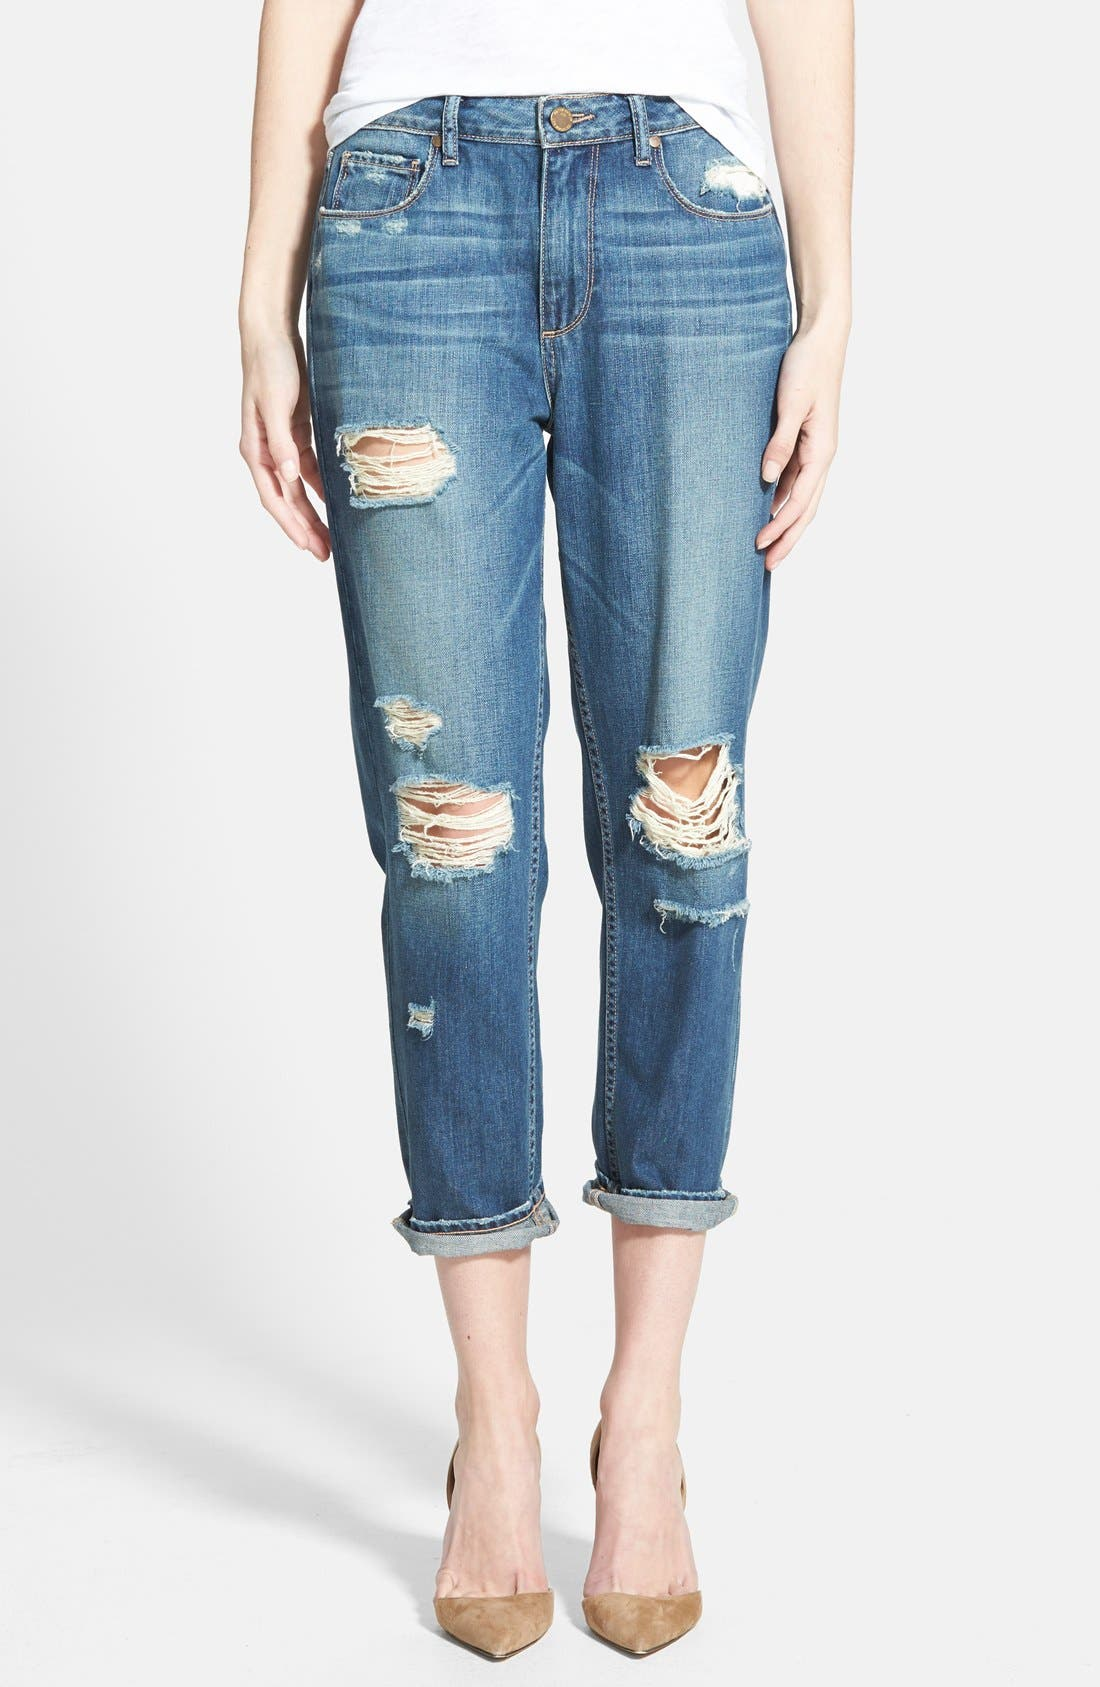 Alternate Image 1 Selected - Paige Denim 'Callie' Crop Boyfriend Jeans (Danica Destructed Blue)